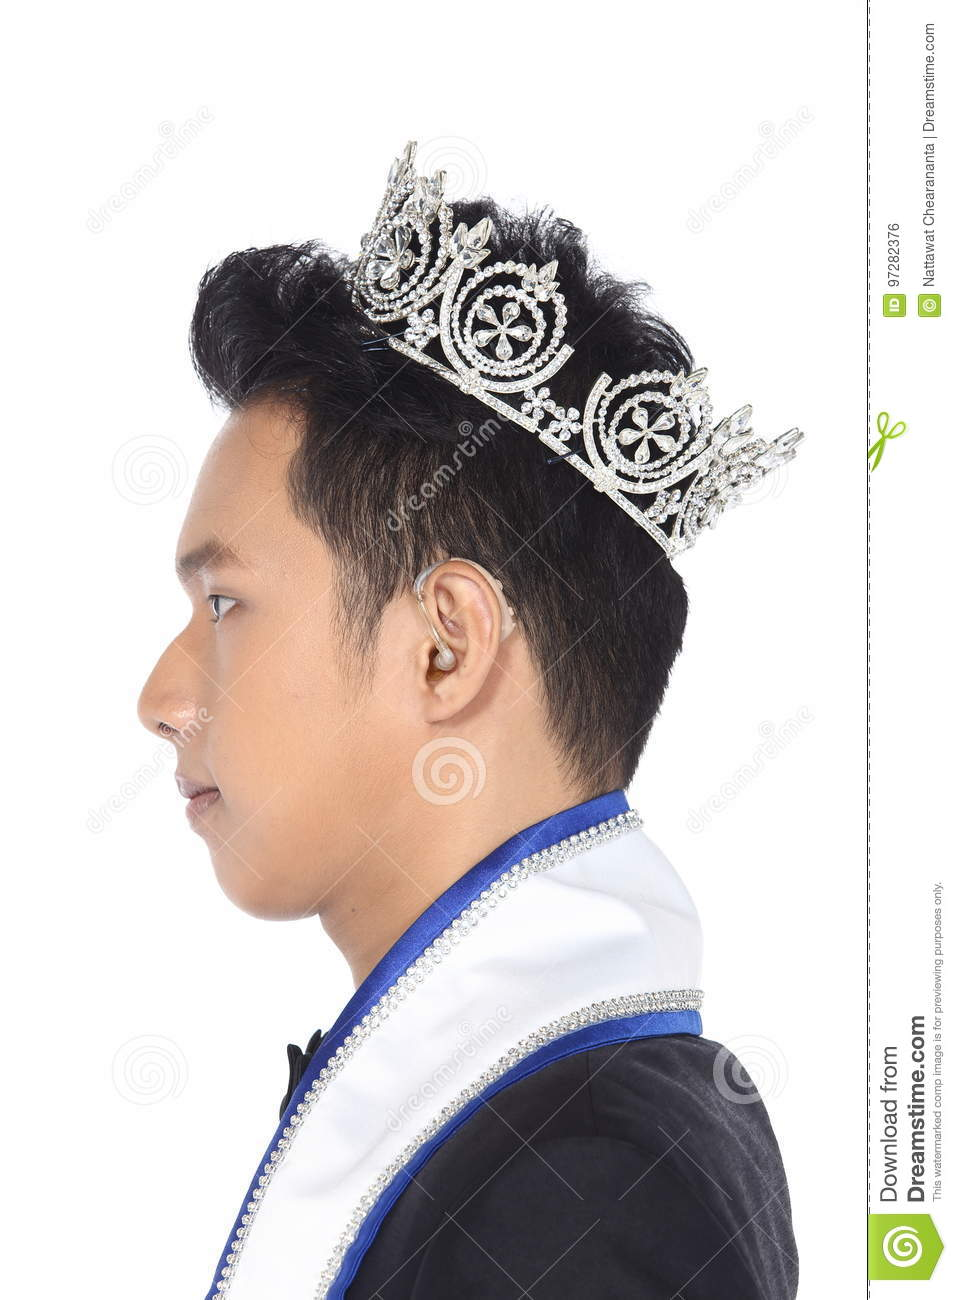 Mister Pageant Contest In Evening Ball Suit With Diamond Crown